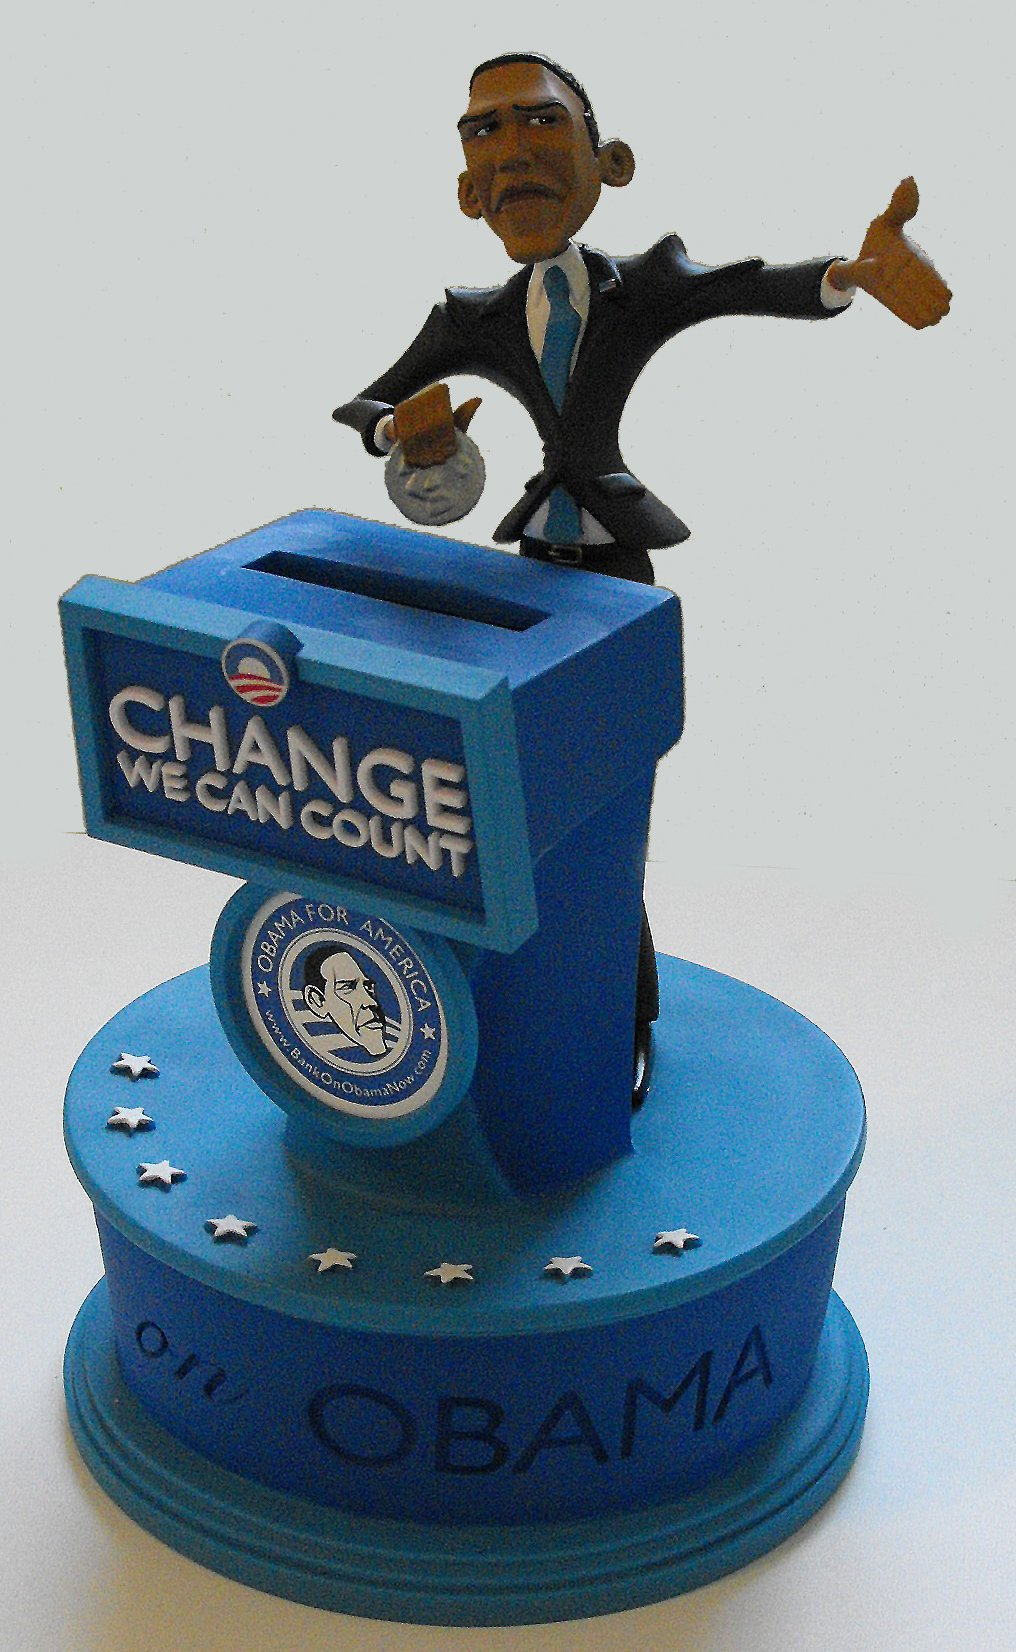 Bank On Obama - Change We Can Count - The Presidential Savings Bank by Beareo (Image #6)